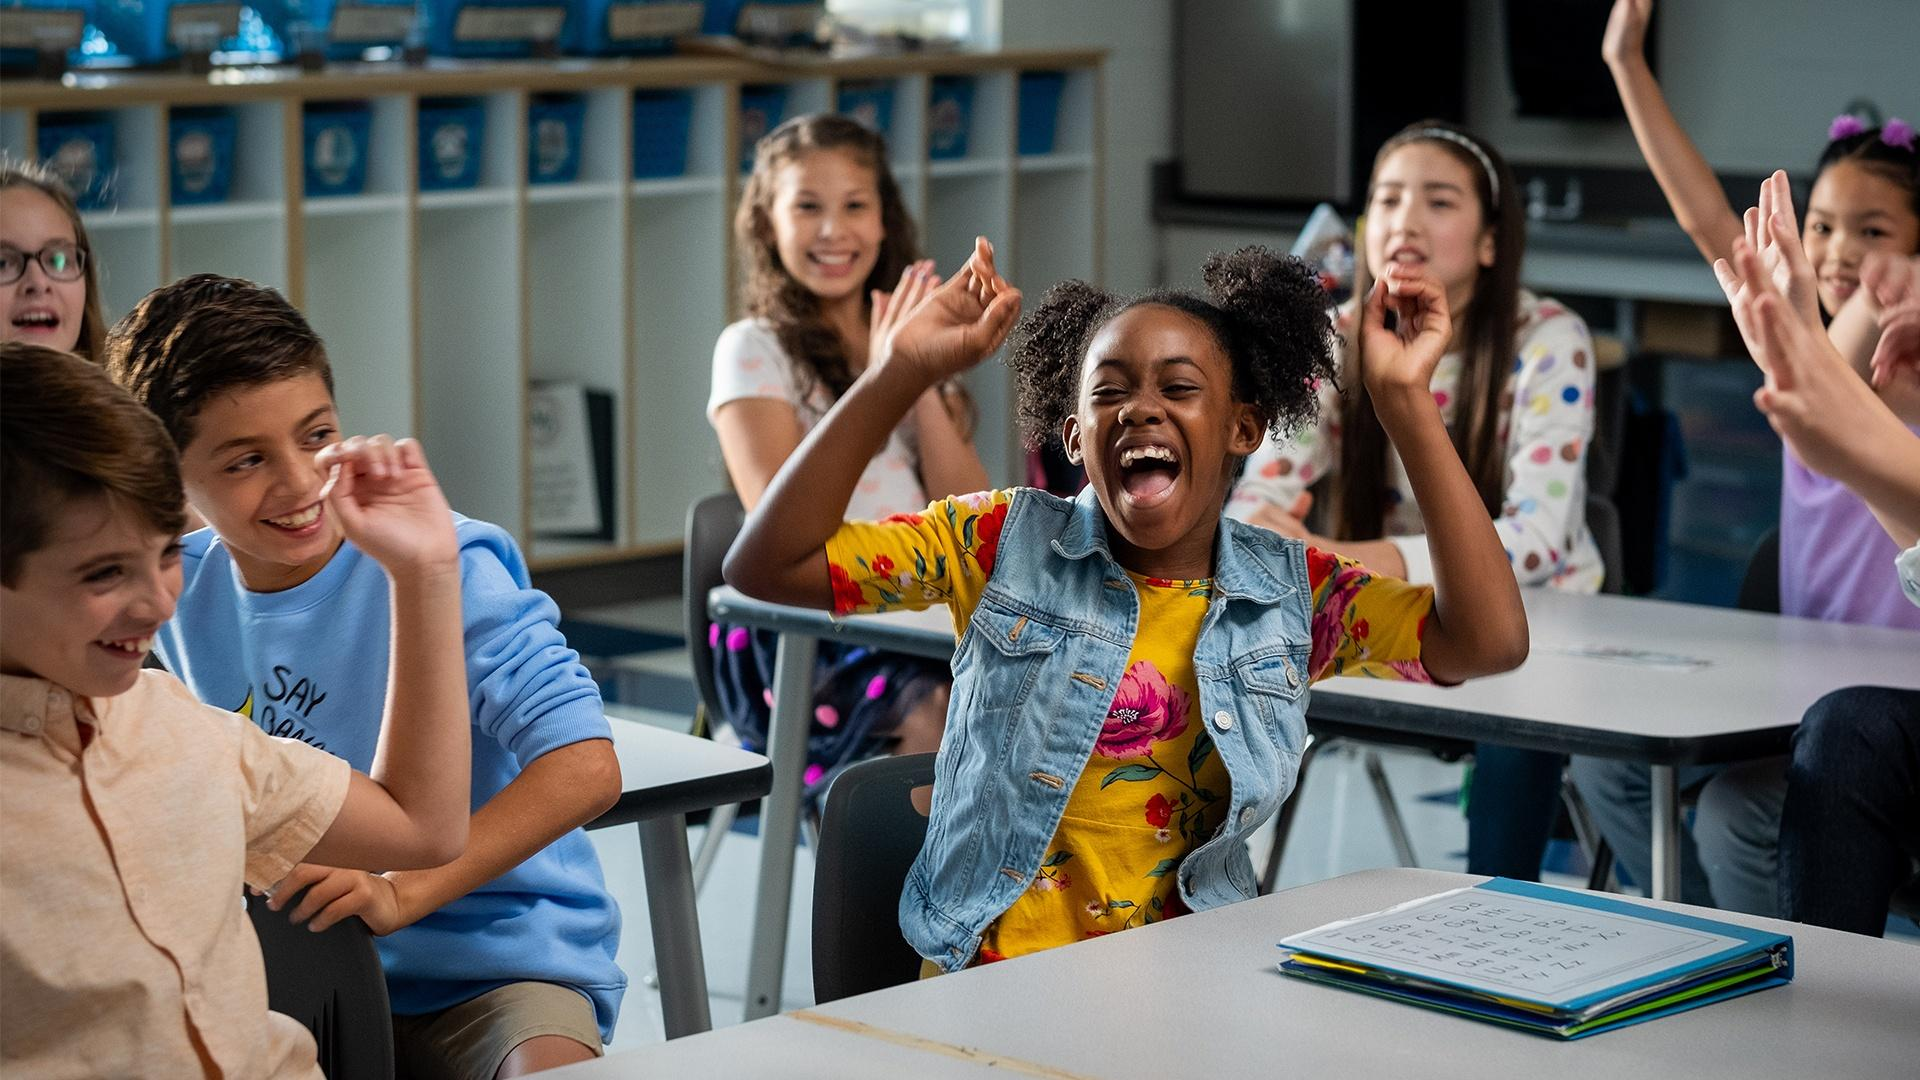 Kids excited to learn in the classroom